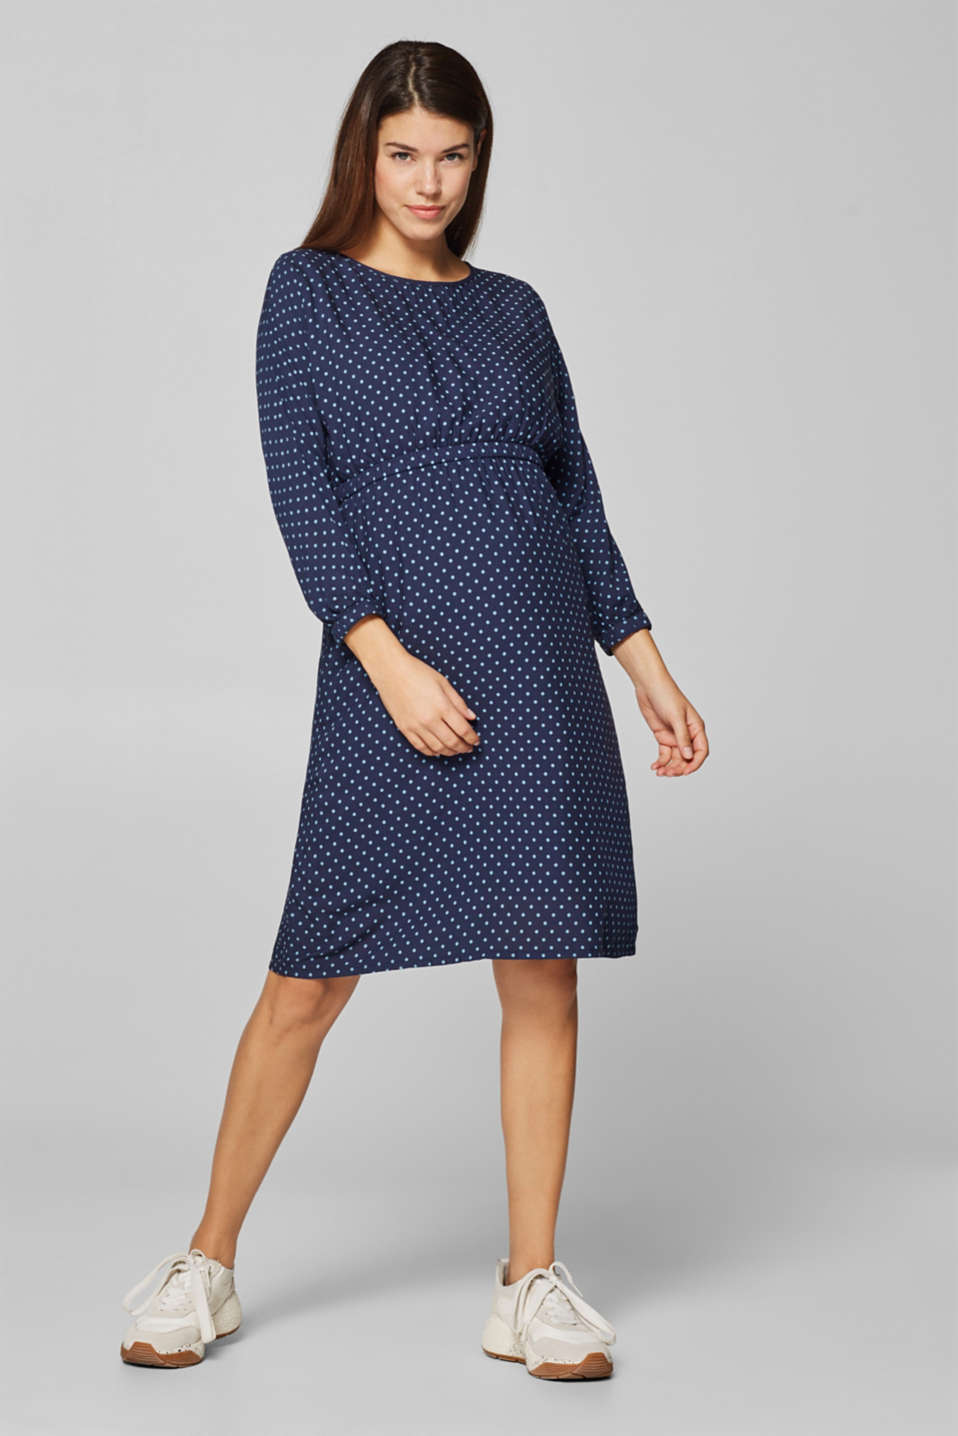 Esprit - Polka dot print dress